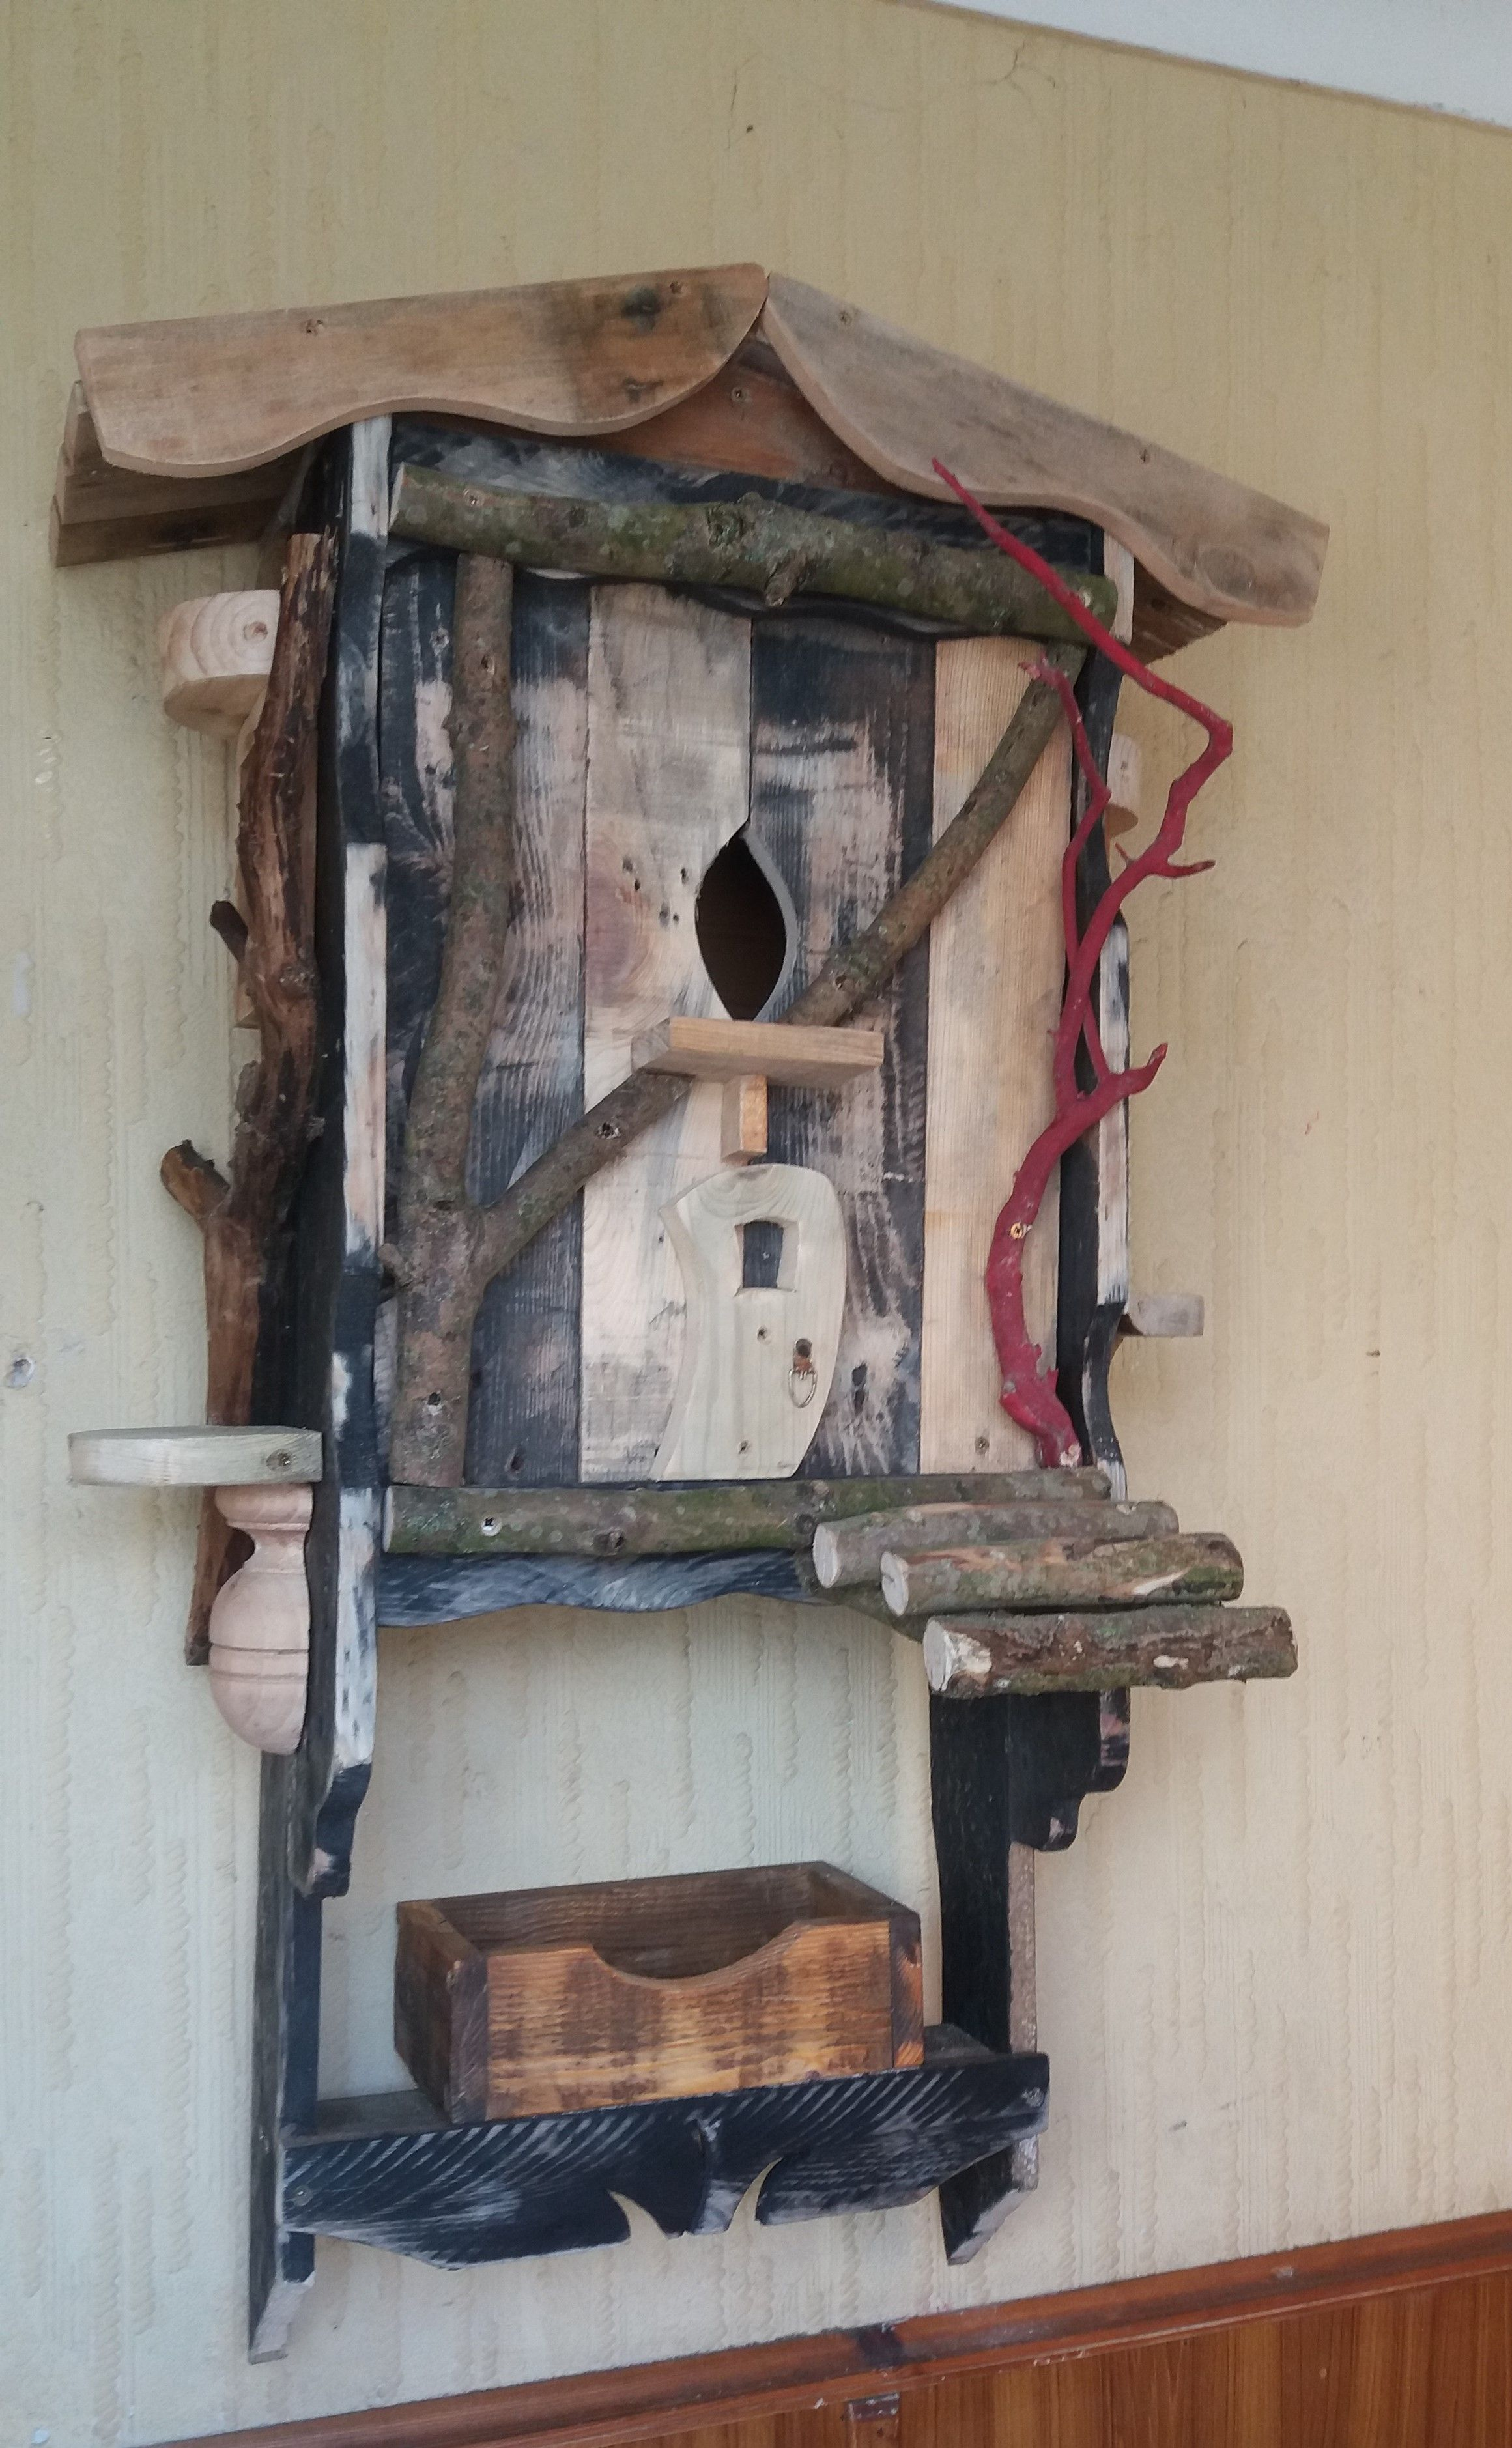 Irish huckster reclaimed wood projects made by johnnie d d